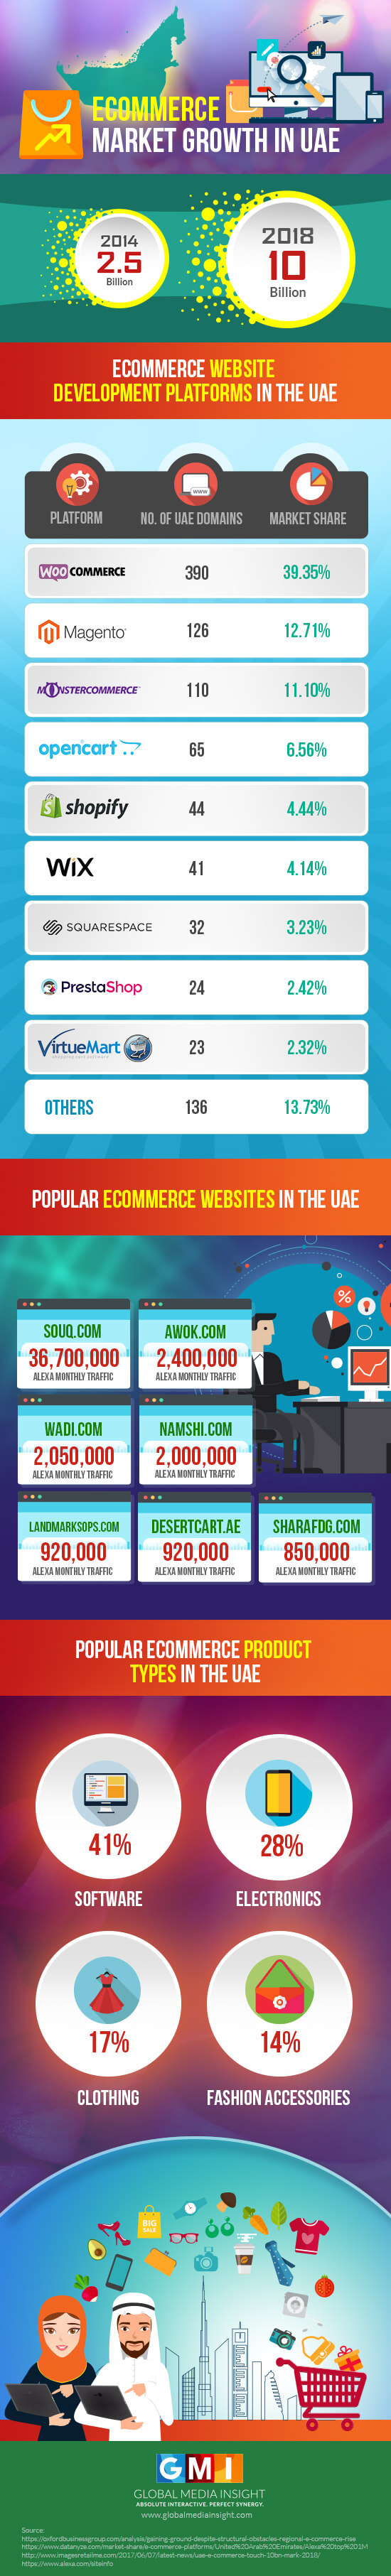 Ecommerce Market Trends & Development Platforms Infographic